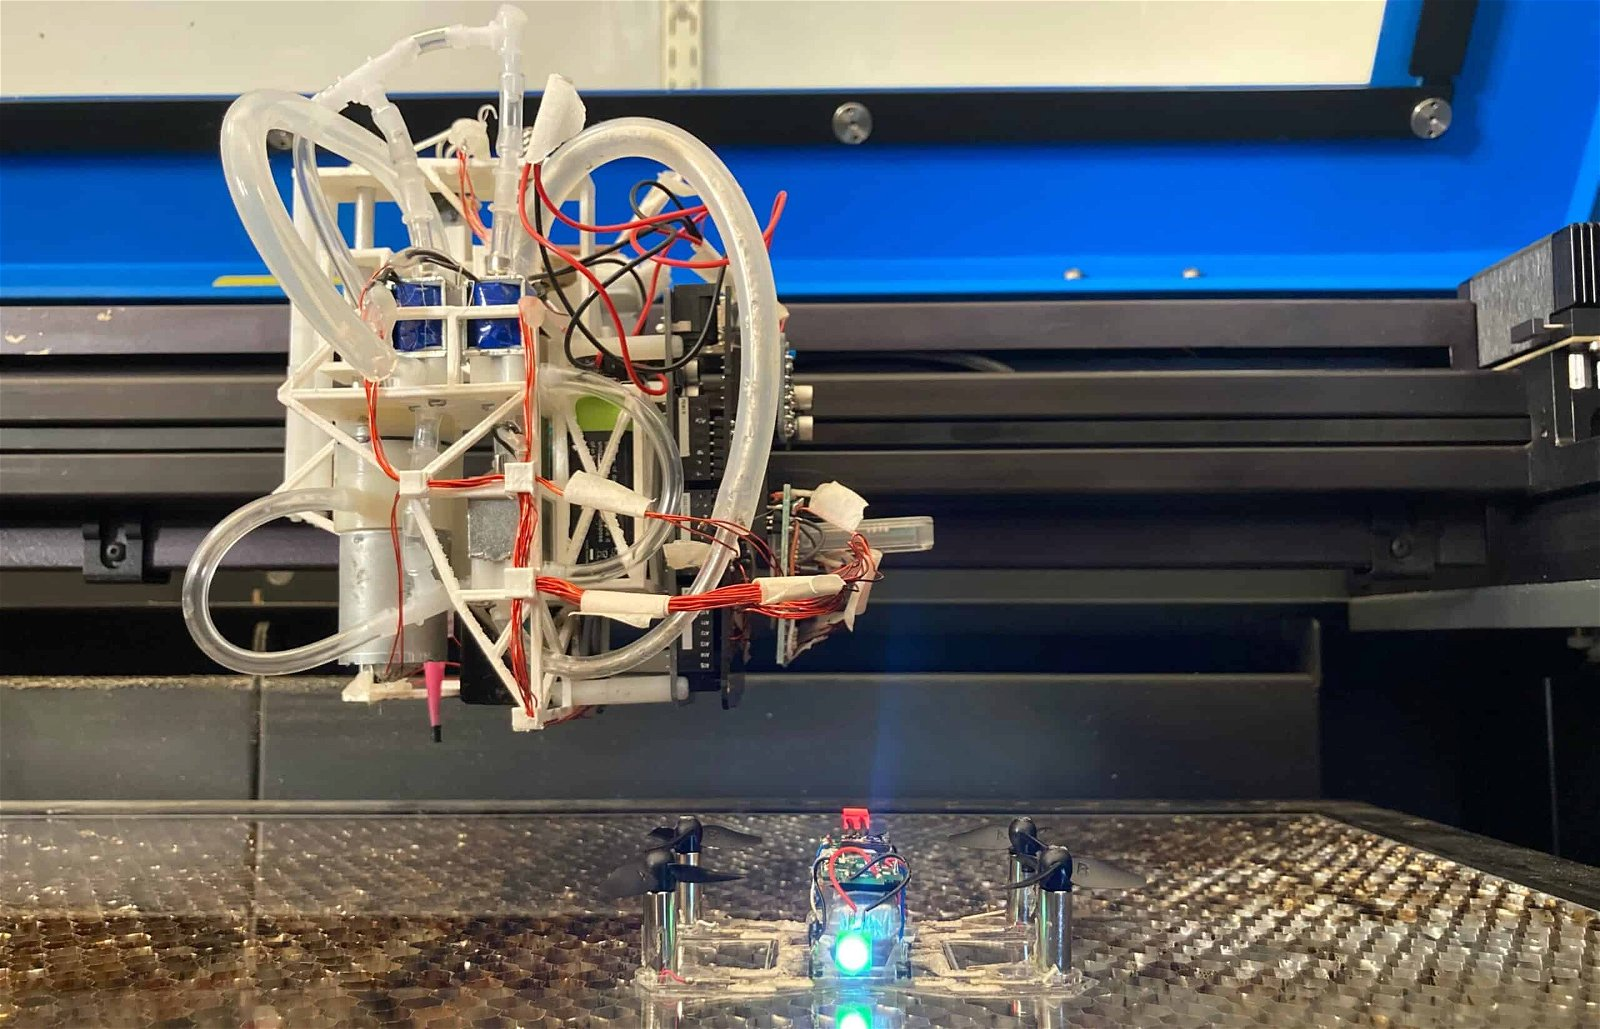 3-D printing, LaserFactory, MIT's, CSAIL, print devices without the need of humans, print devices